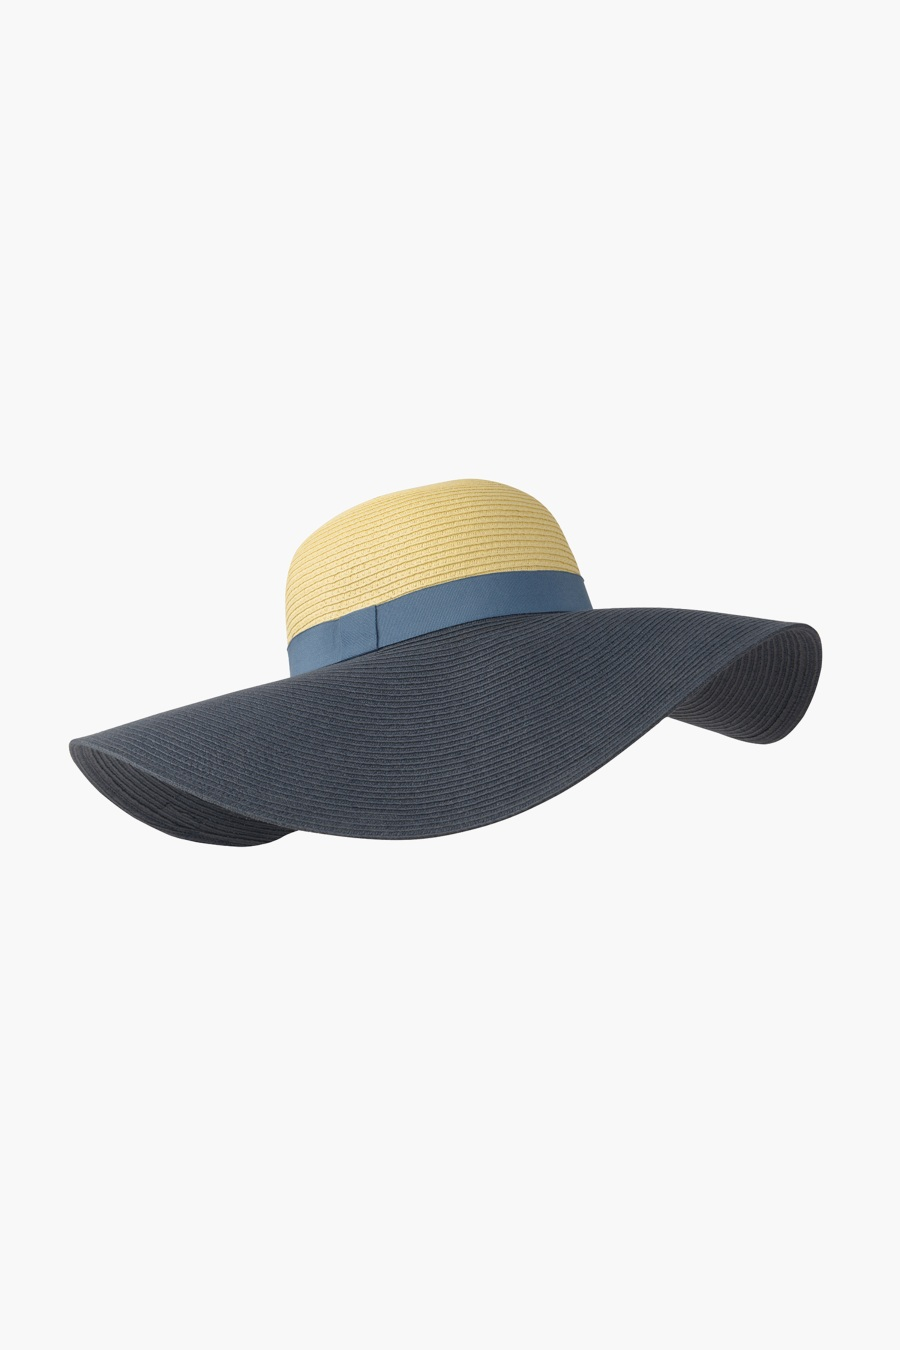 SEASALT CLOTHING - POOL HAT IN SAILOR - £25